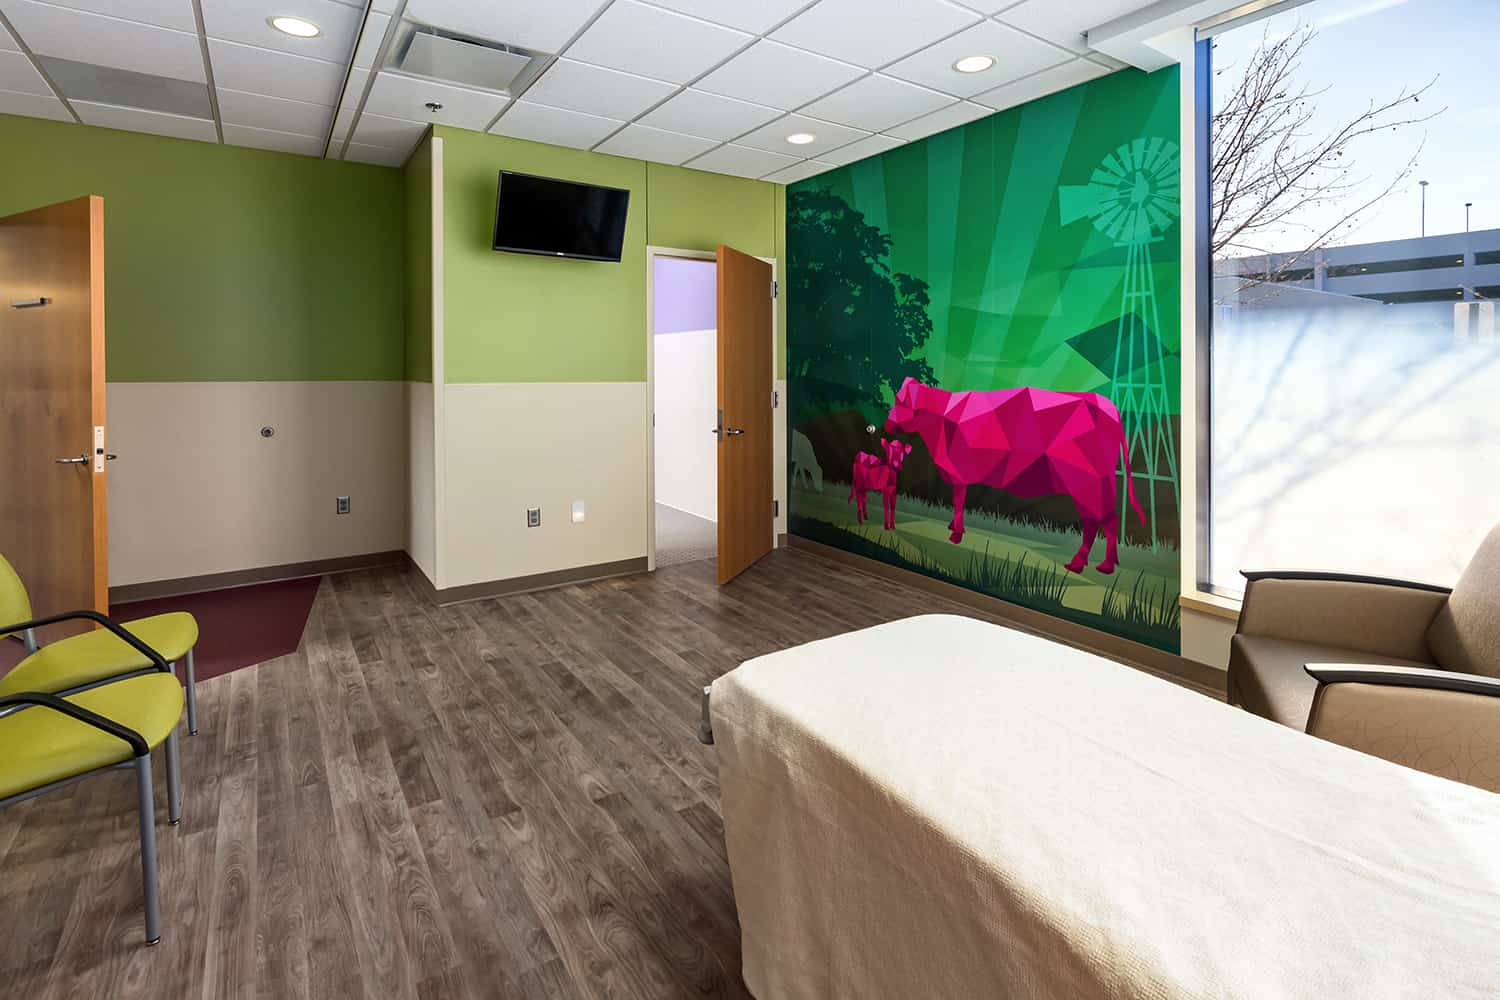 A patient room with a wall mural of cows.